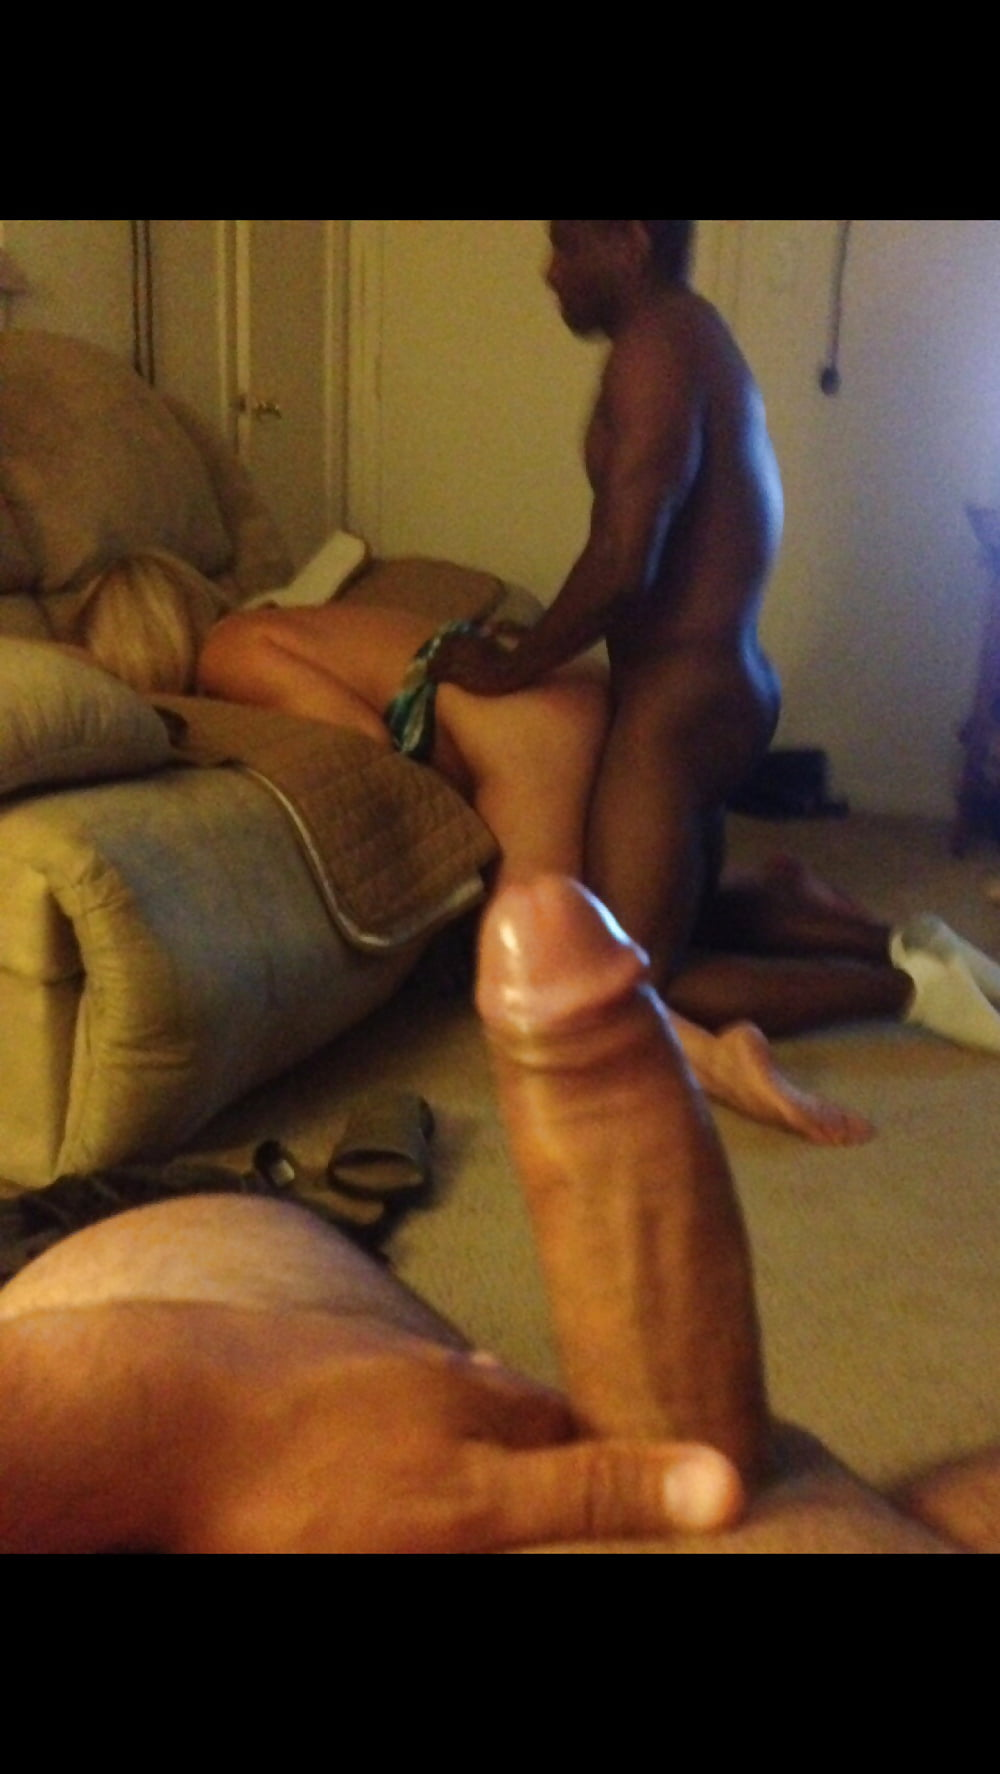 Double penetration spitroast mmf first time